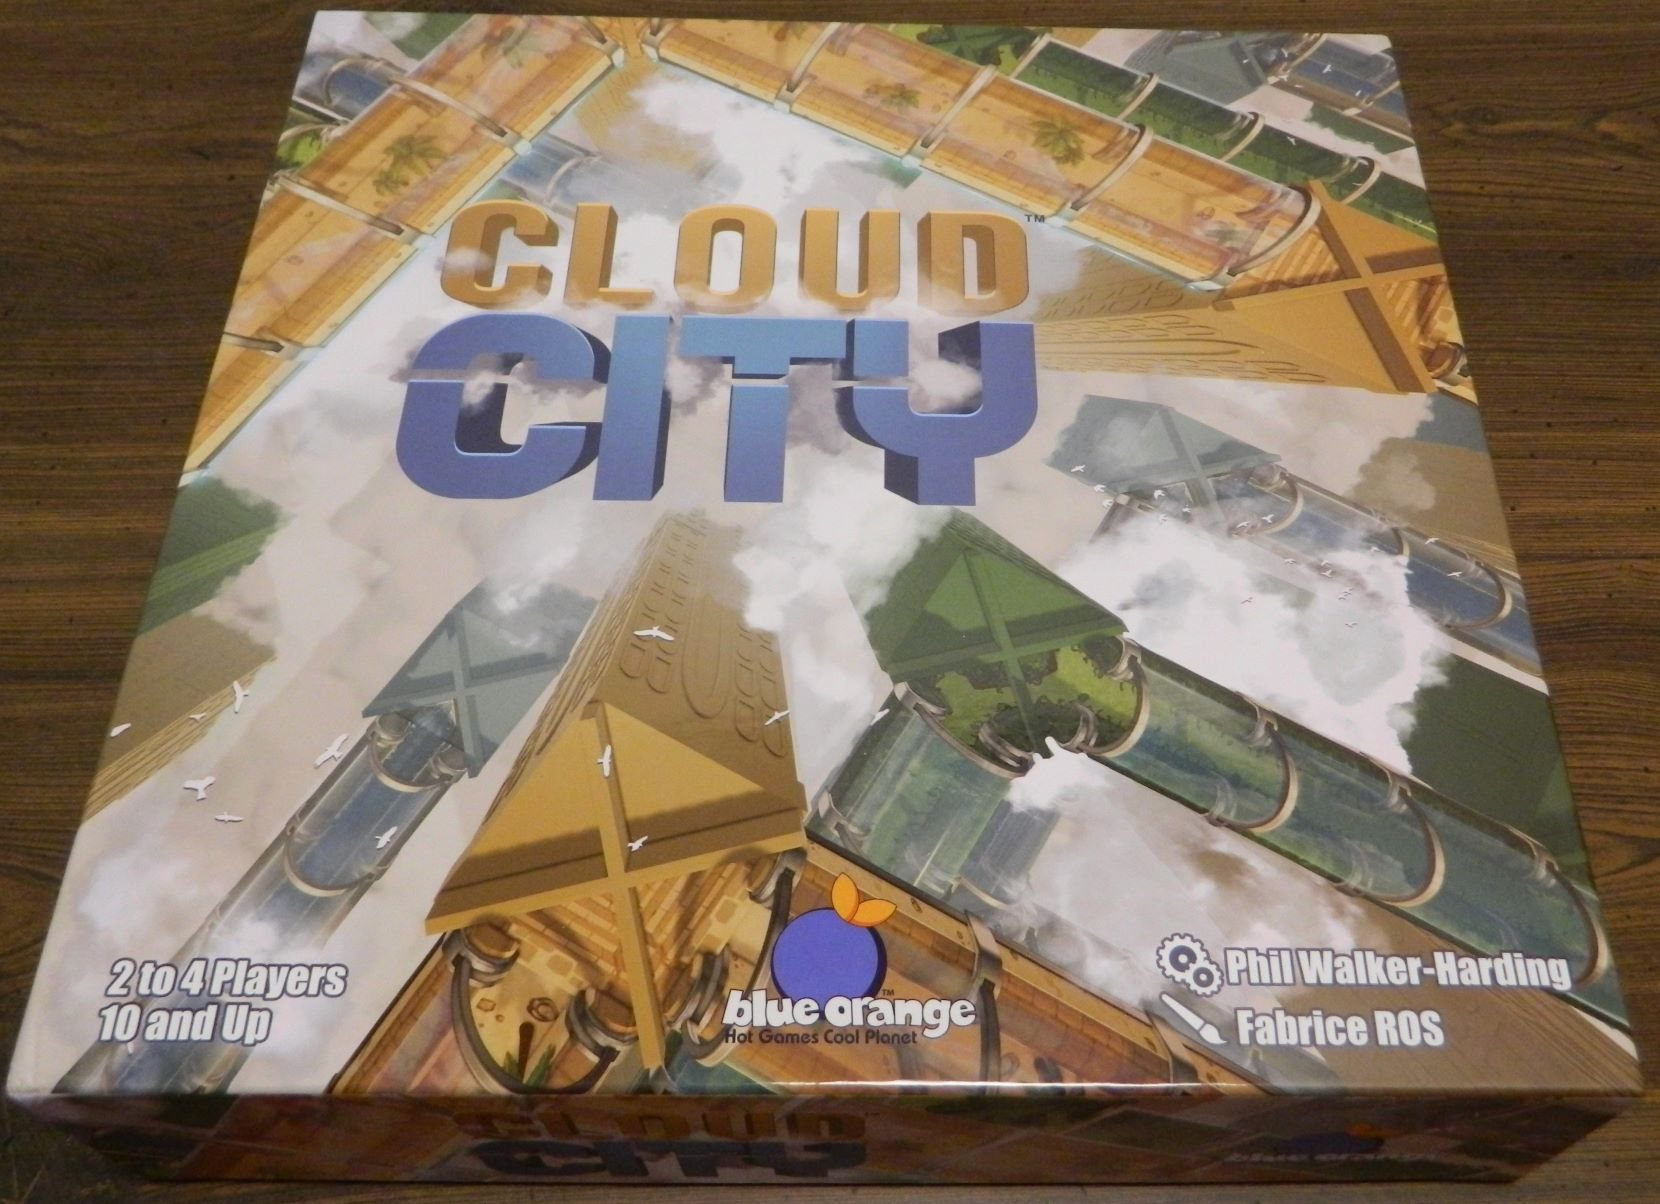 Box for Cloud City